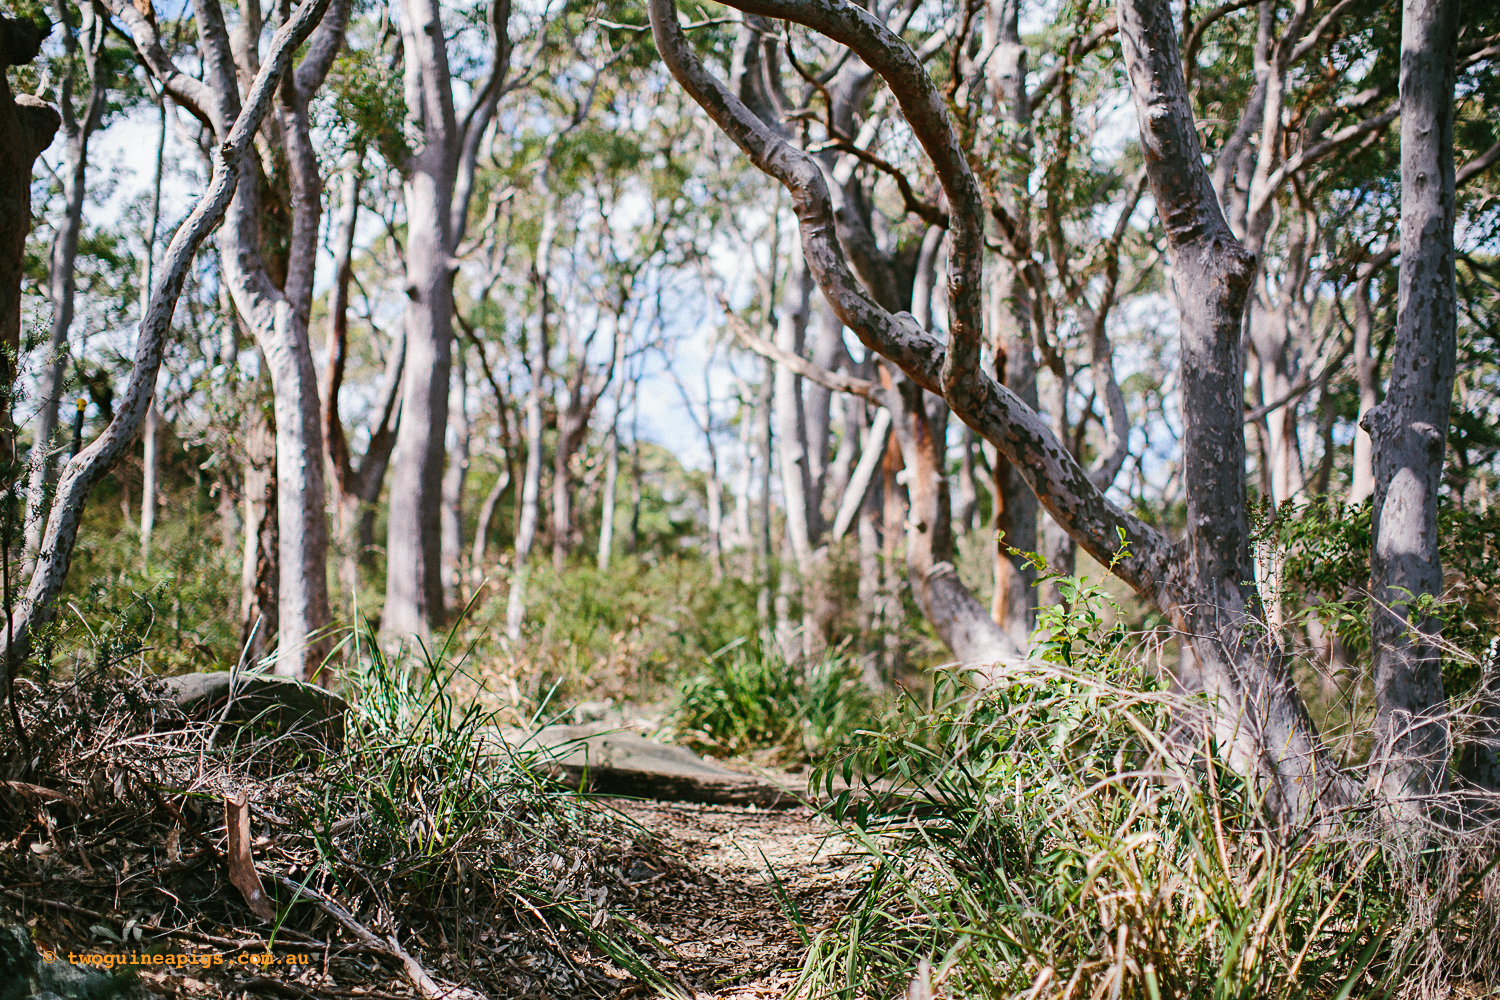 twoguineapigs_pet_photography_berry_island_reserve_wollstonecraft_location_scout_1500-56.jpg